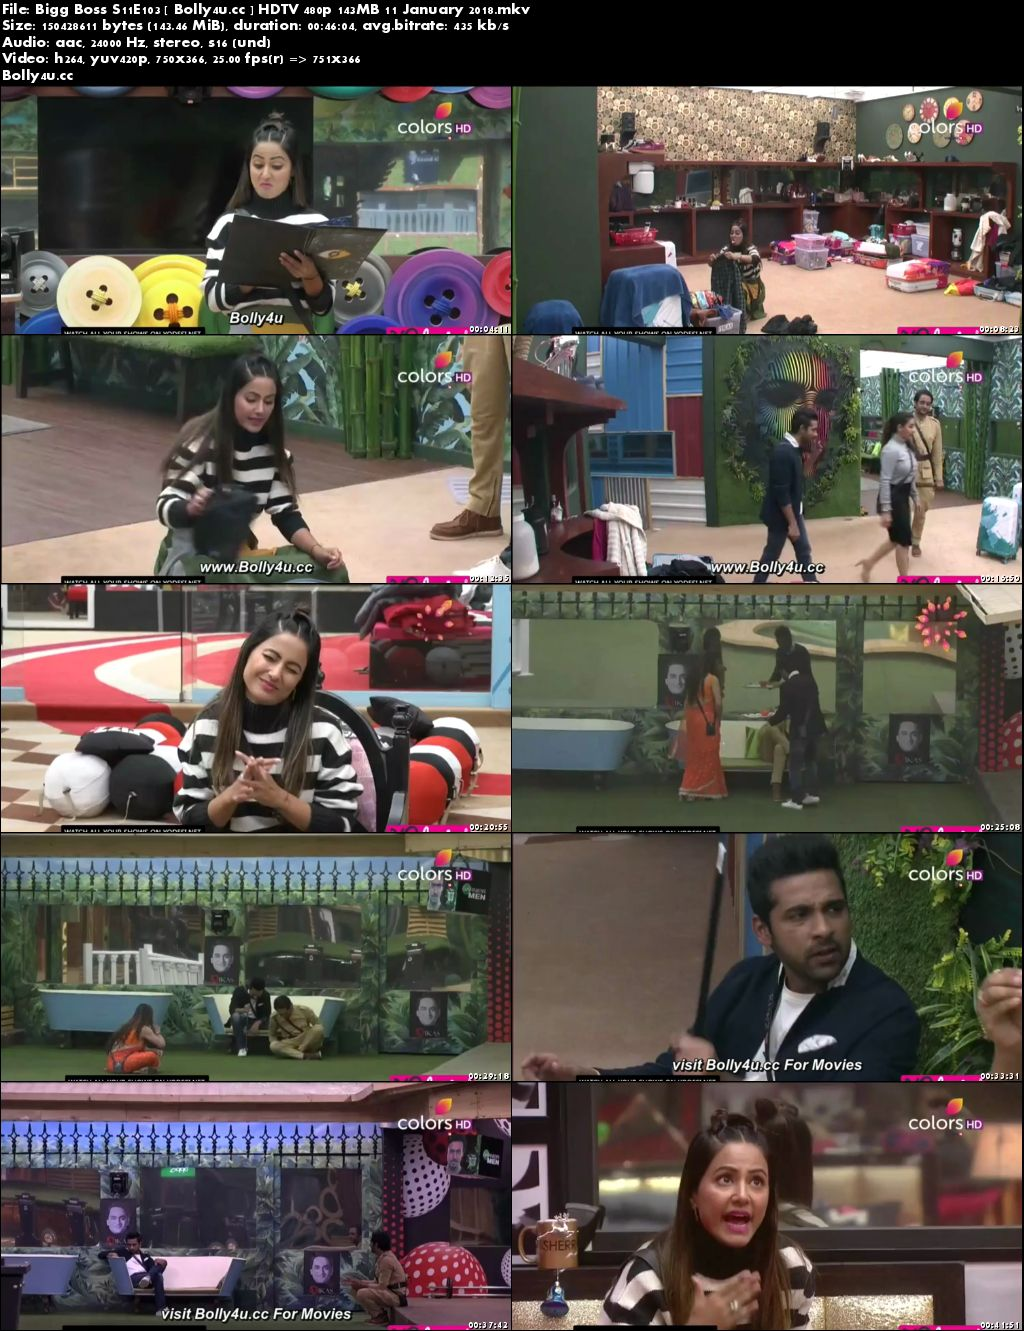 Bigg Boss S11E103 HDTV 480p 140MB 11 January 2018 Download